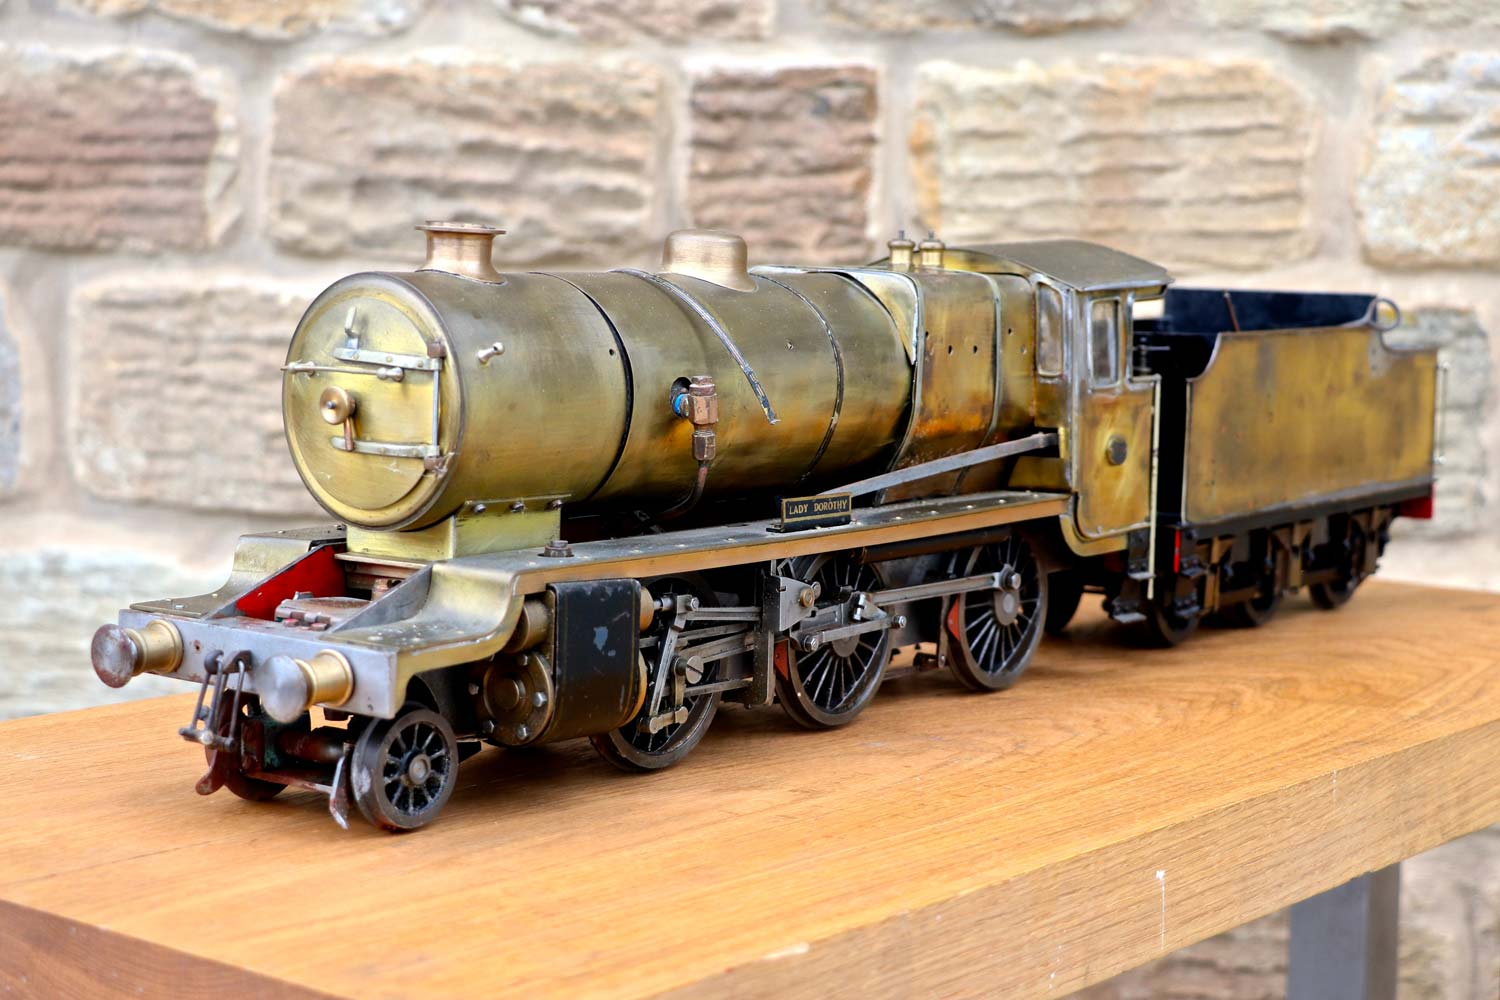 test 2-and-a-half-inch-gauge-LBSC-Lady-Dorothy-DYAK-live-steam-locomotive-for-sale-03